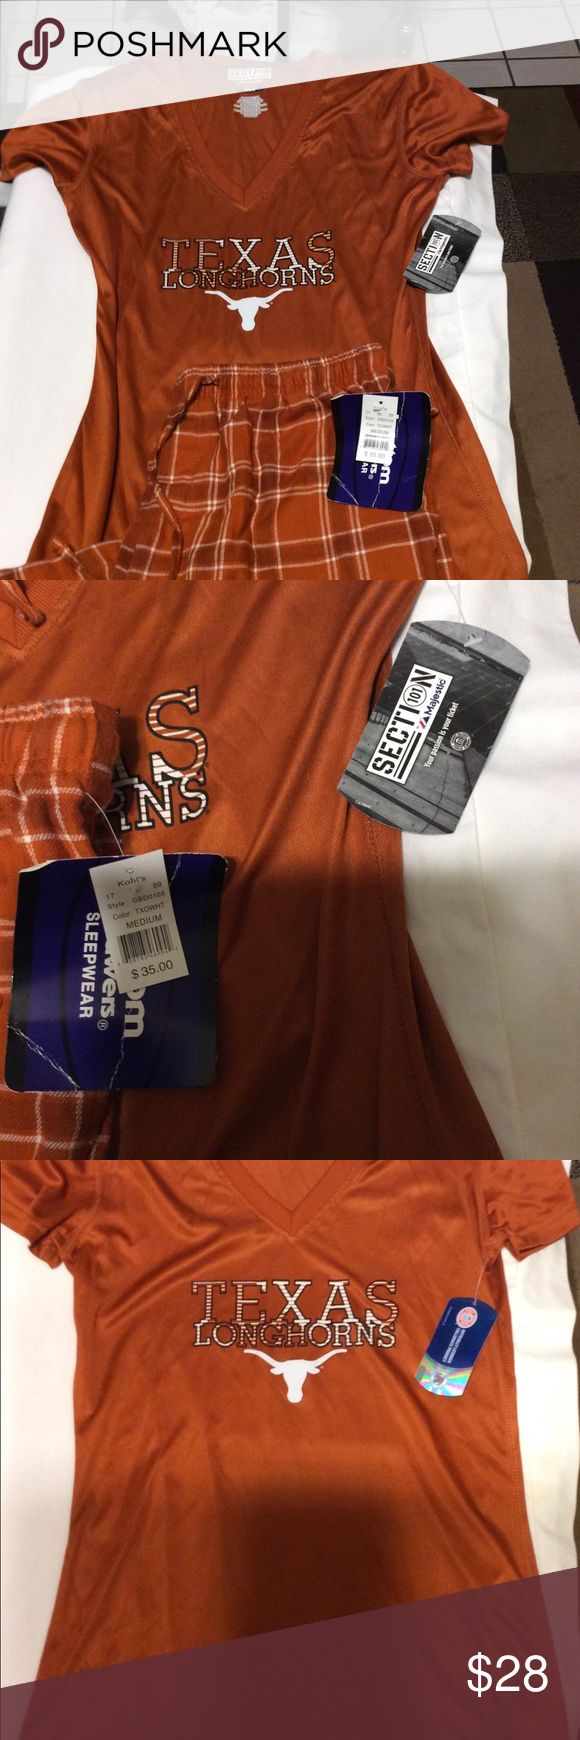 NWT Texas longhorns PJ'S Never worn flannel pants and woman's top. Bottom Drawers Intimates & Sleepwear Pajamas